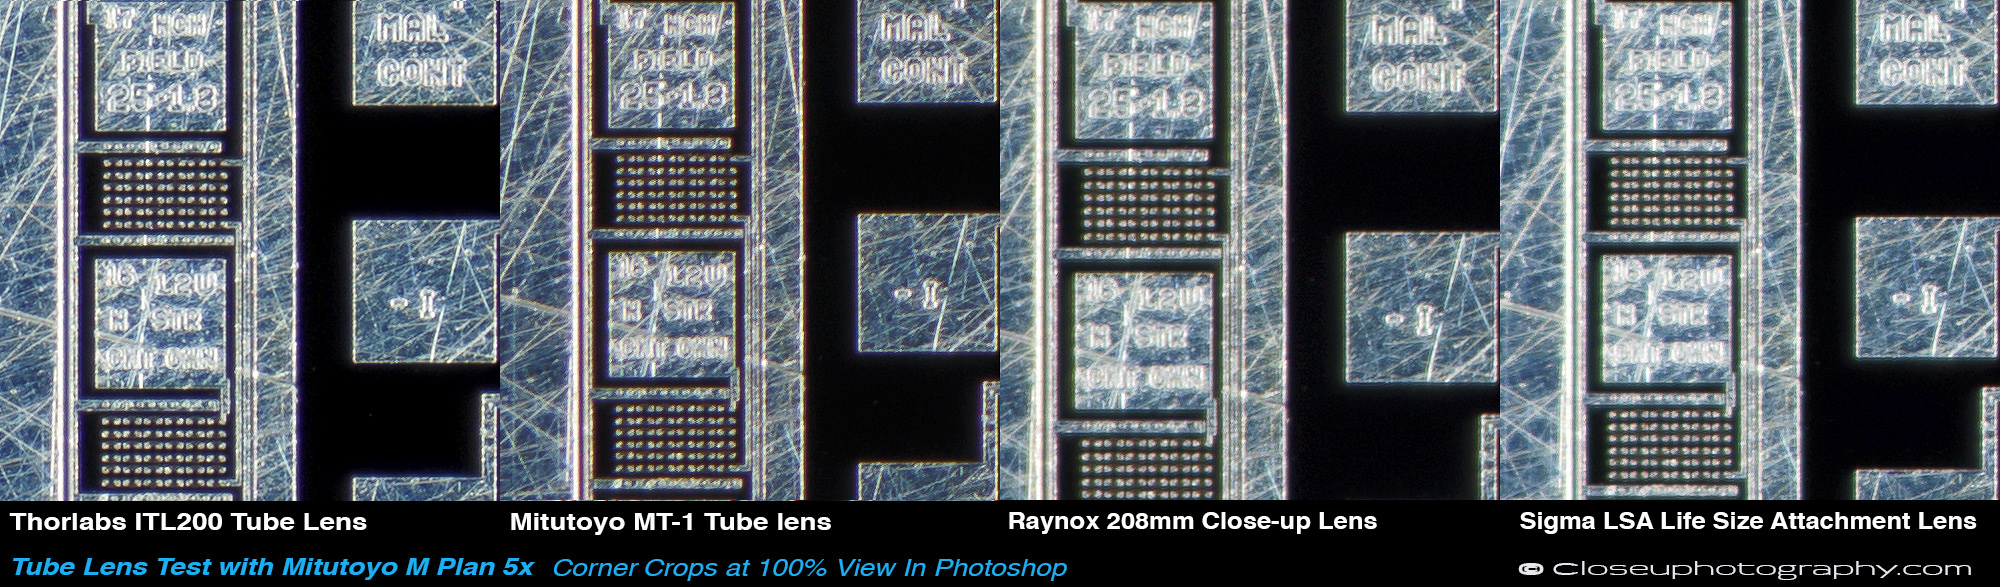 Tube-lens-test-200mm-100-percent-corner-crops-with-Mitutoyo-M-Plan-5x-Closeuphotography.jpg